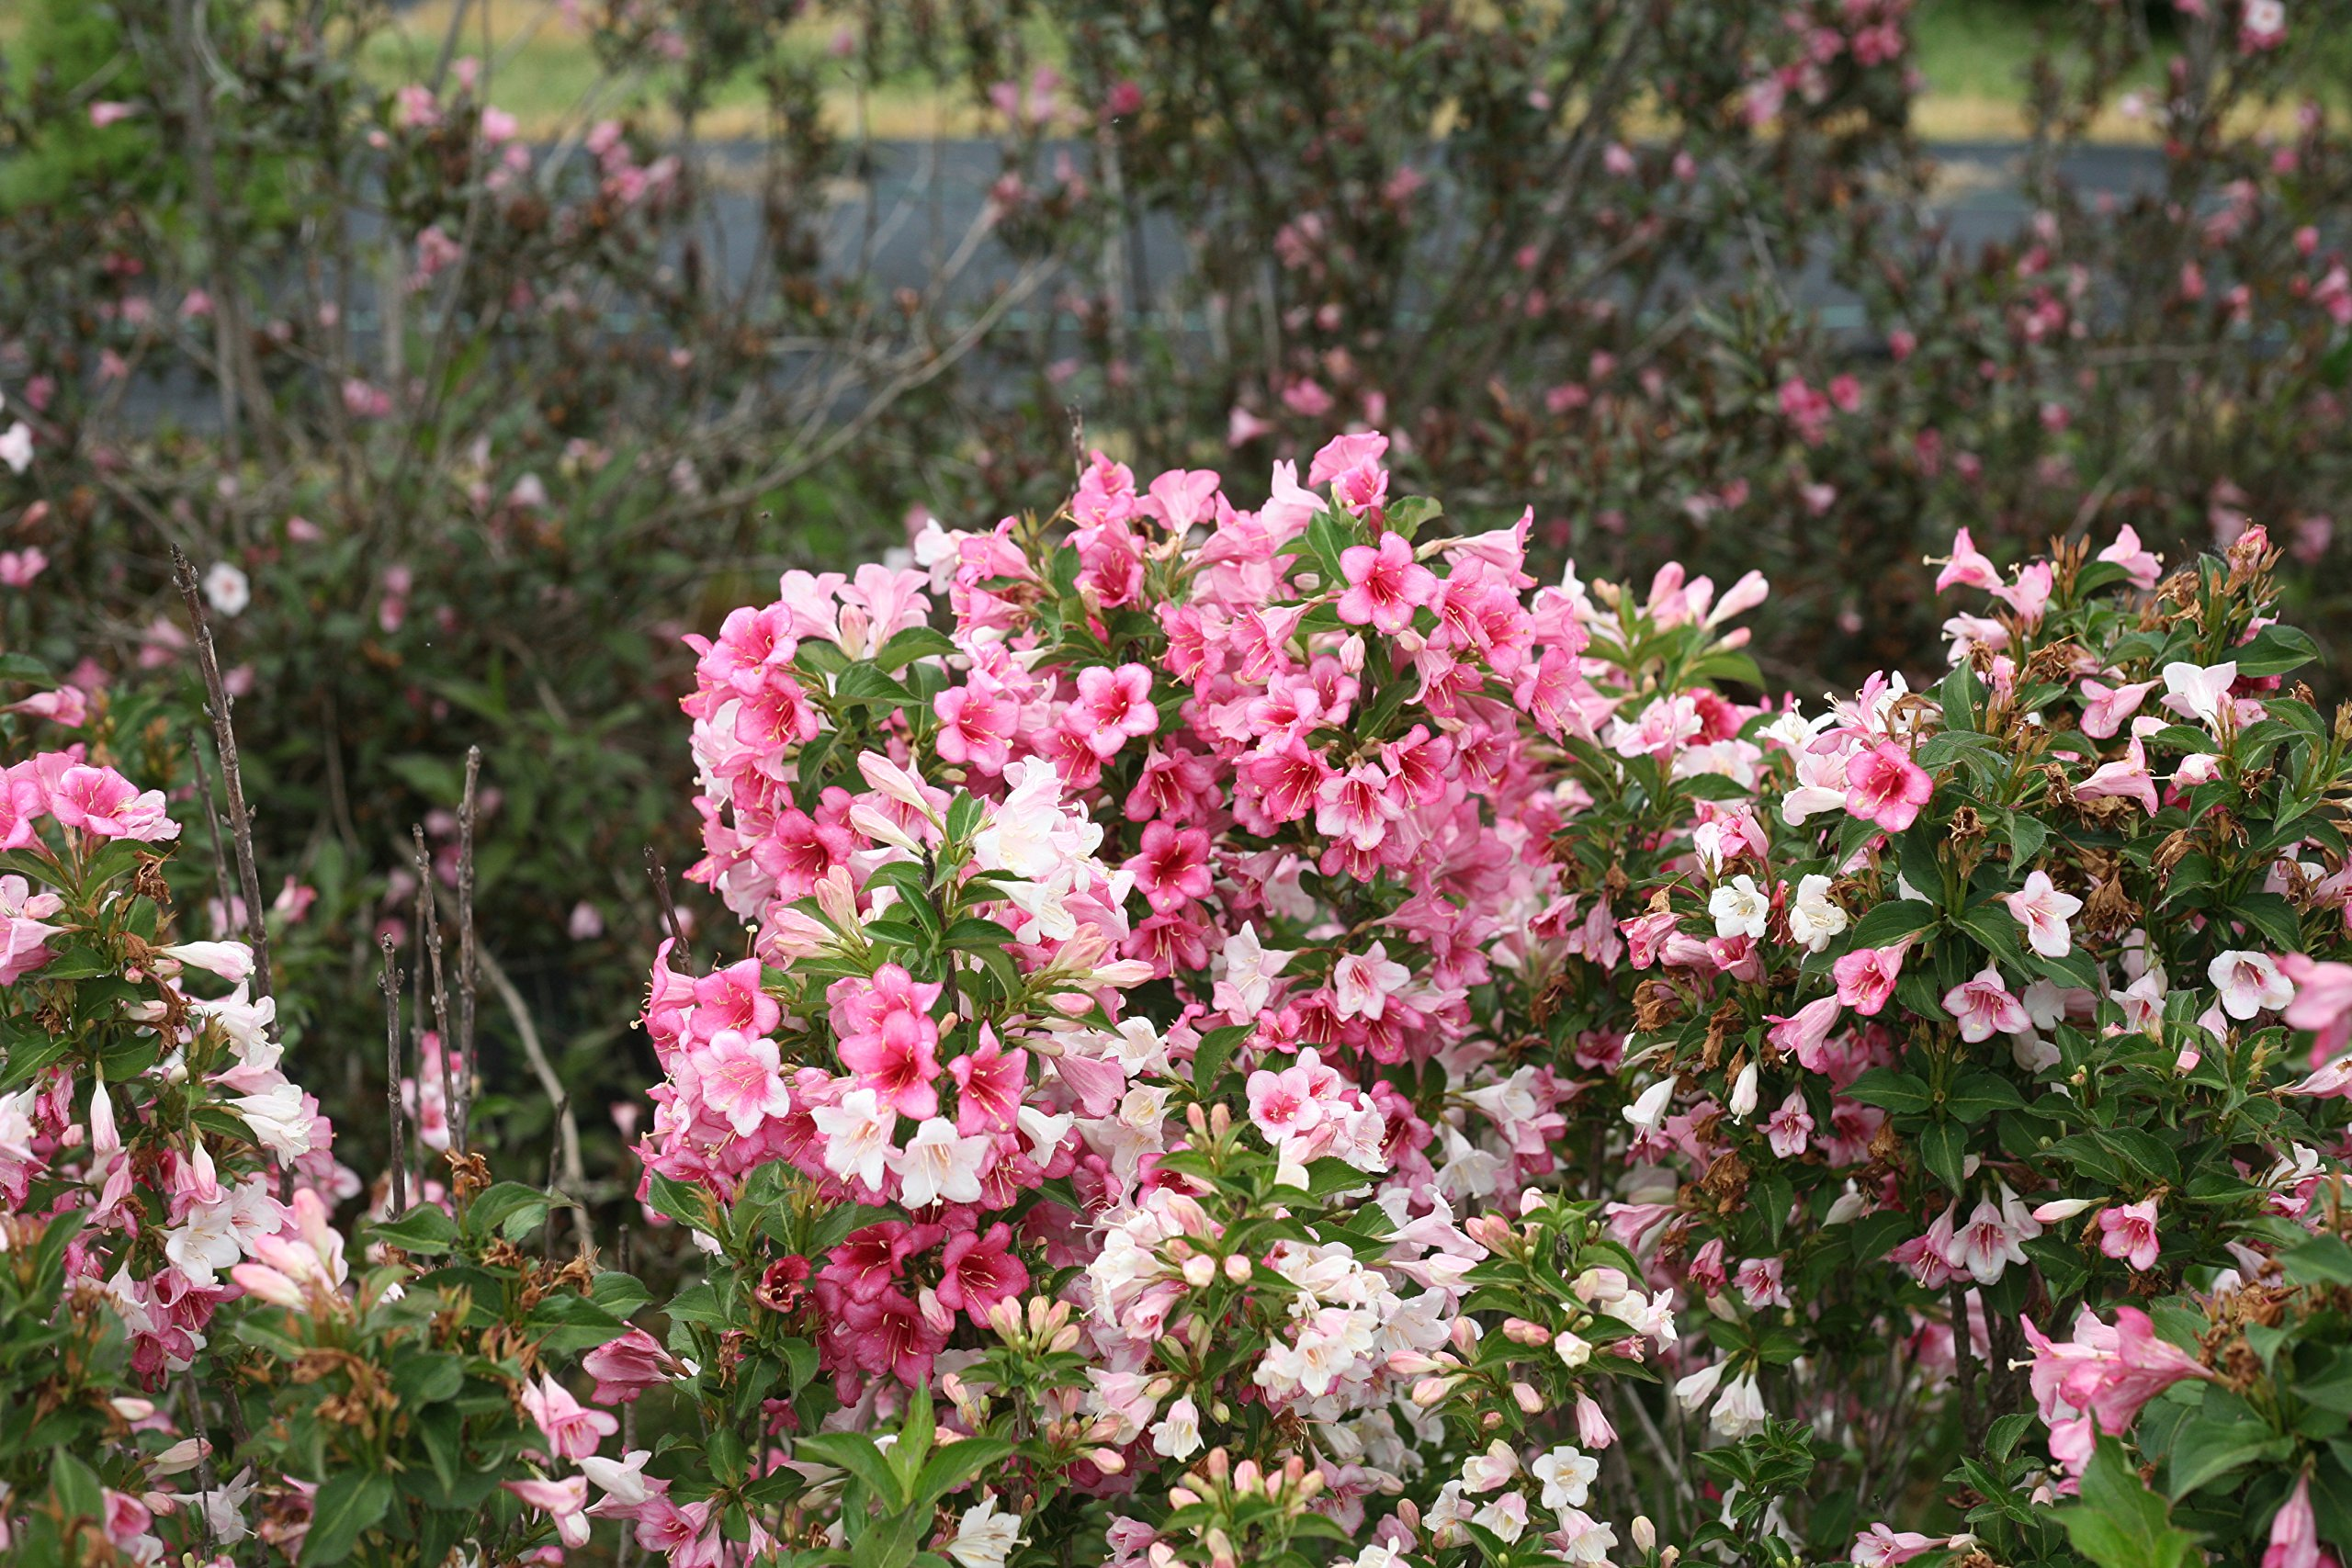 Czechmark Trilogy (Weigela) Live Shrub, White, Pink, and Red Flowers, 1 Gallon by Proven Winners (Image #6)